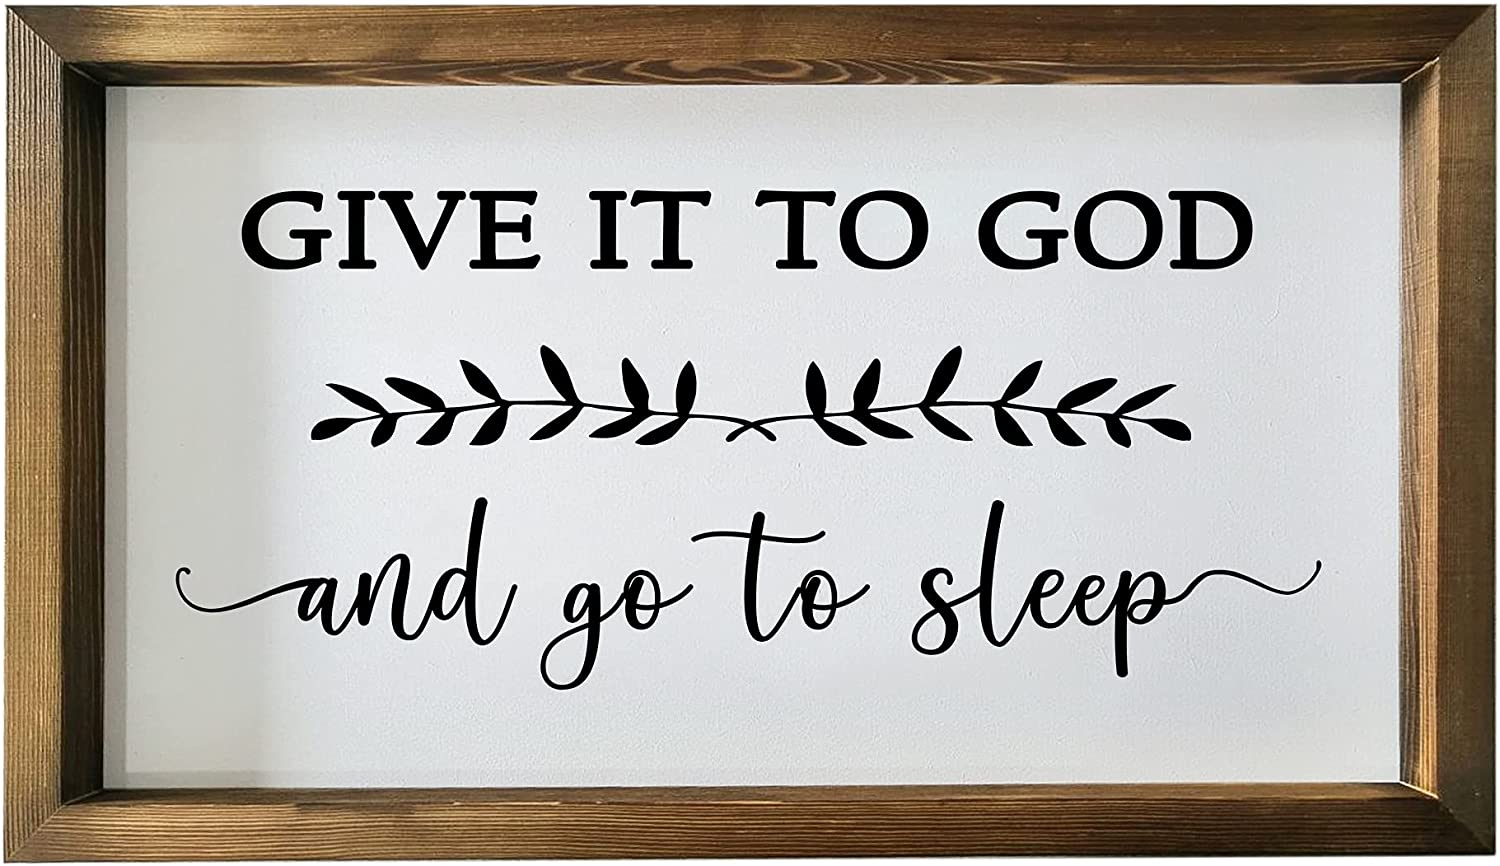 cocomong Master Bedroom Decor for the Home Country Rustic Farmhouse Wall Art Above Bed, Modern Livingroom Christian Religious Decor, Give It to God and Go to Sleep Sign with Wood Frame 16x9.5x1 Inch